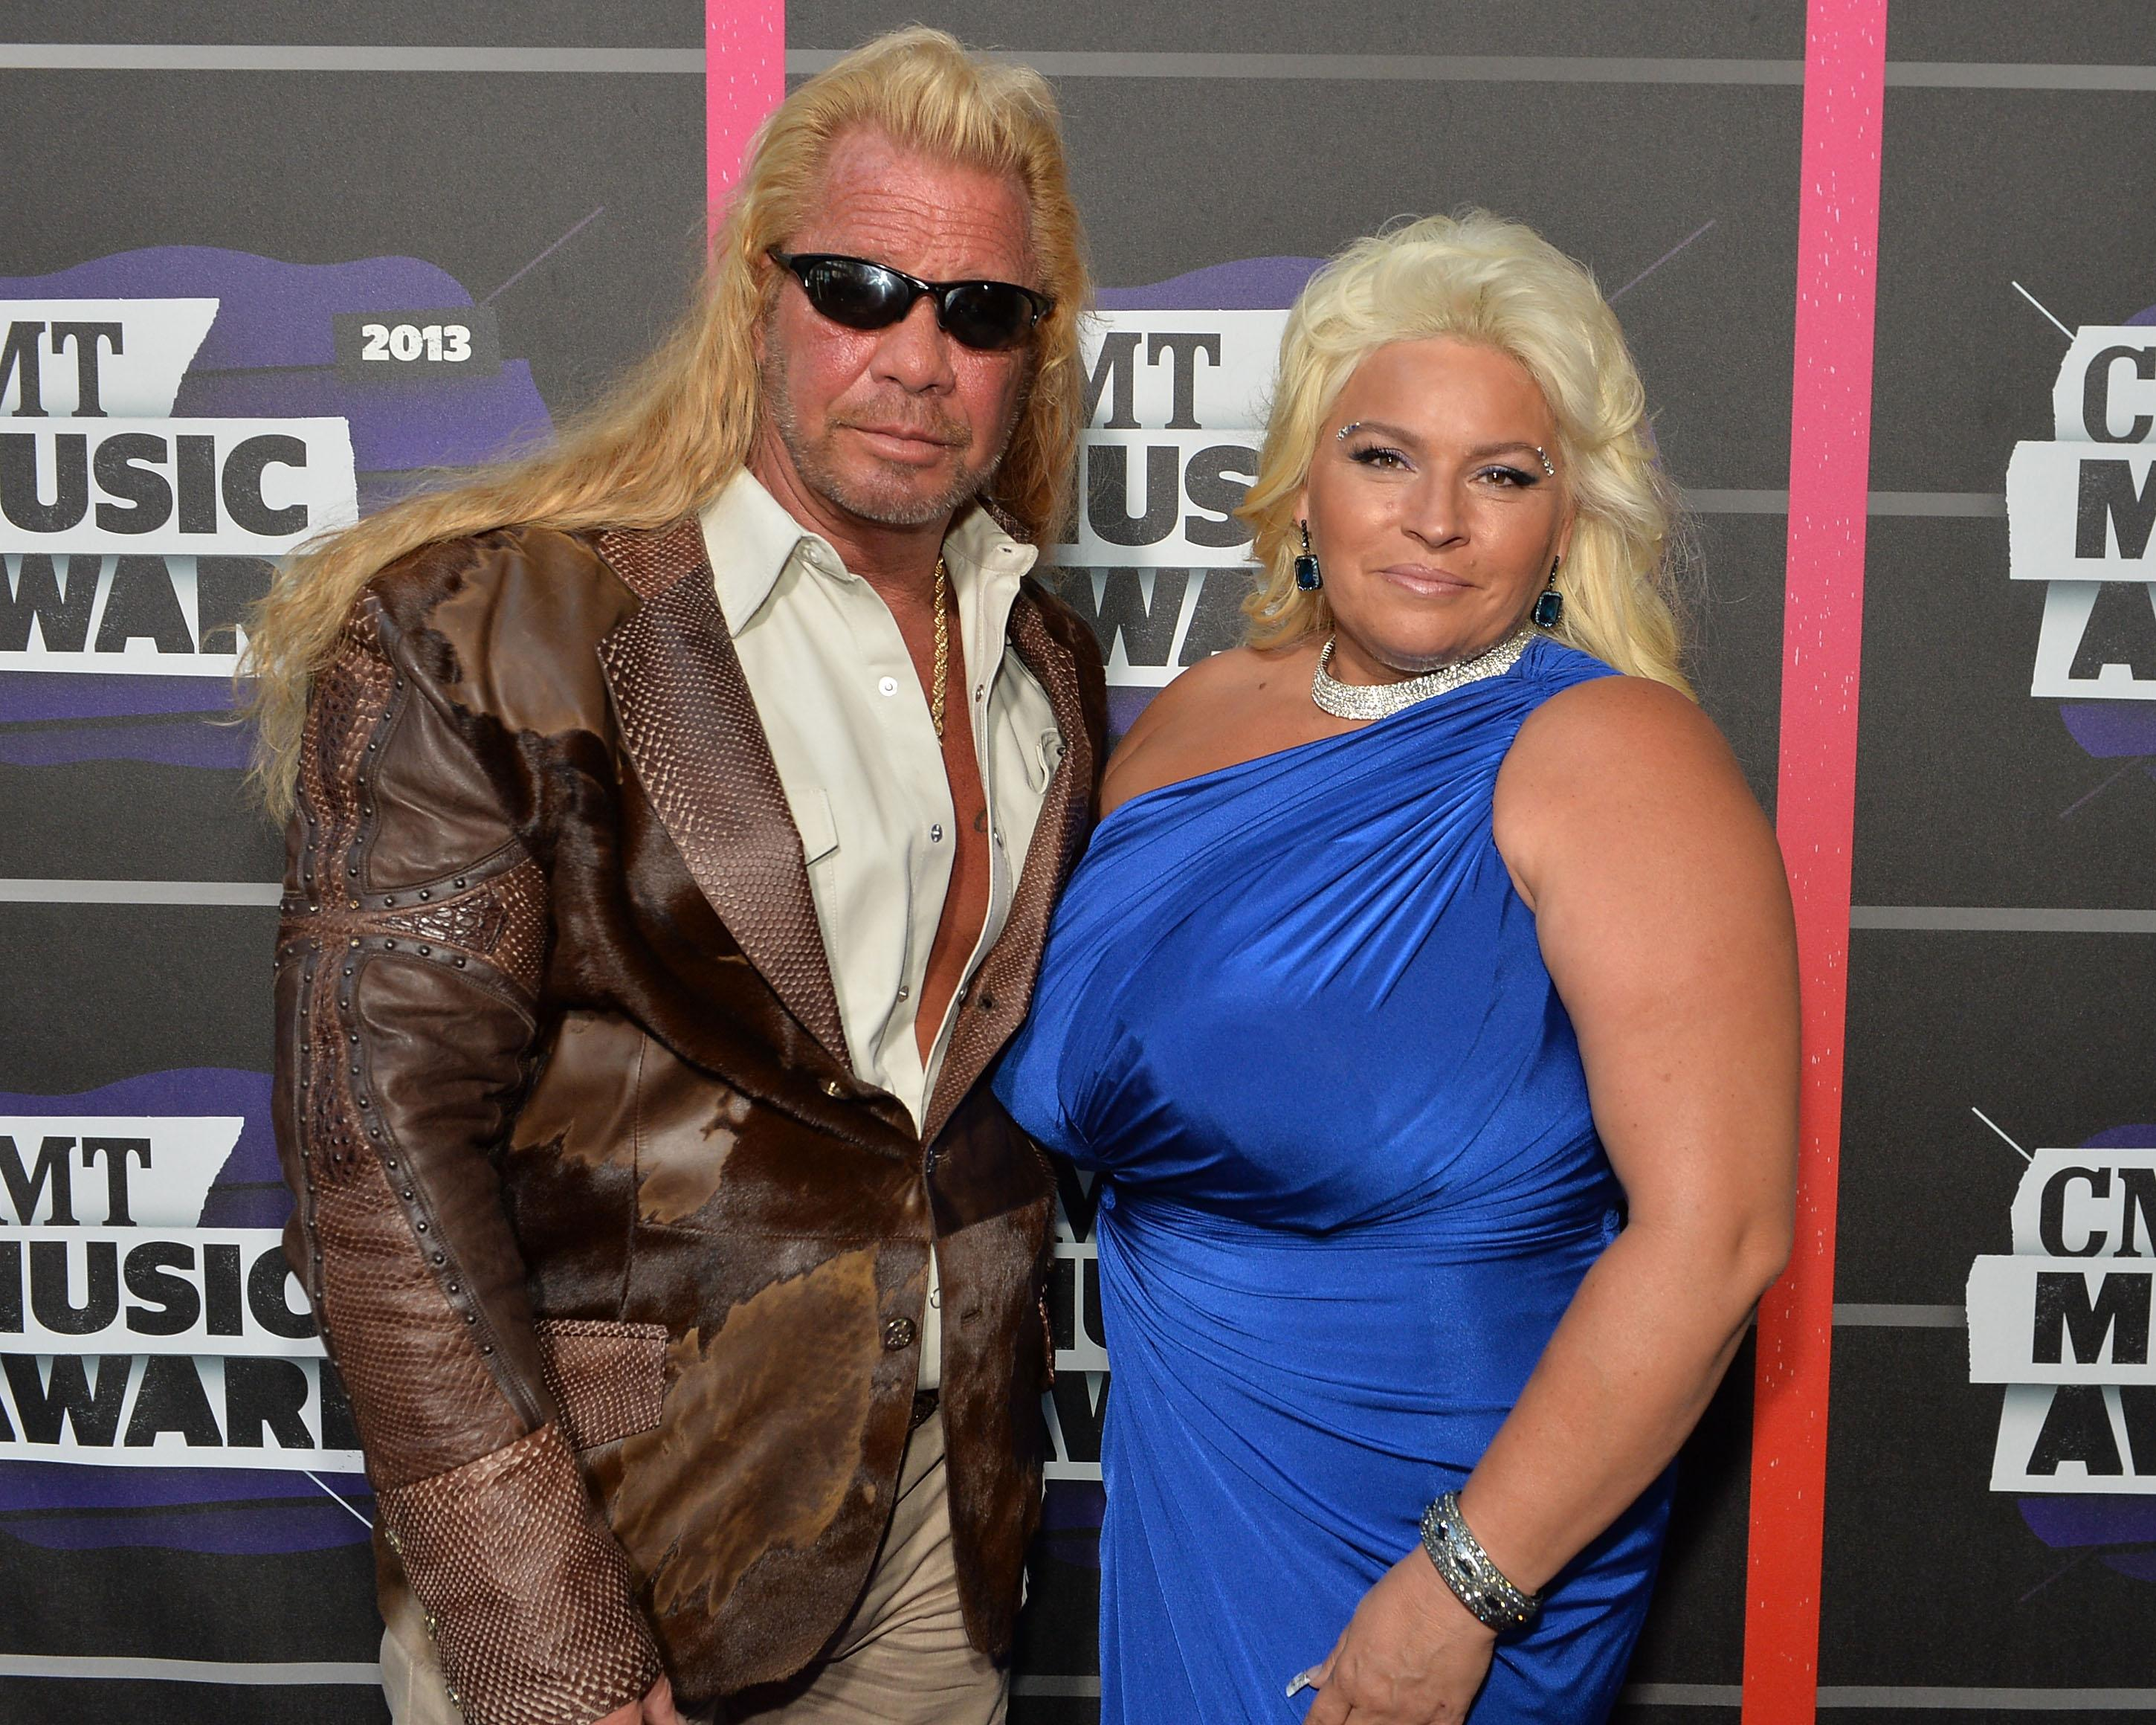 Beth Chapman 'Not Expected To Recover' According To Family Sources